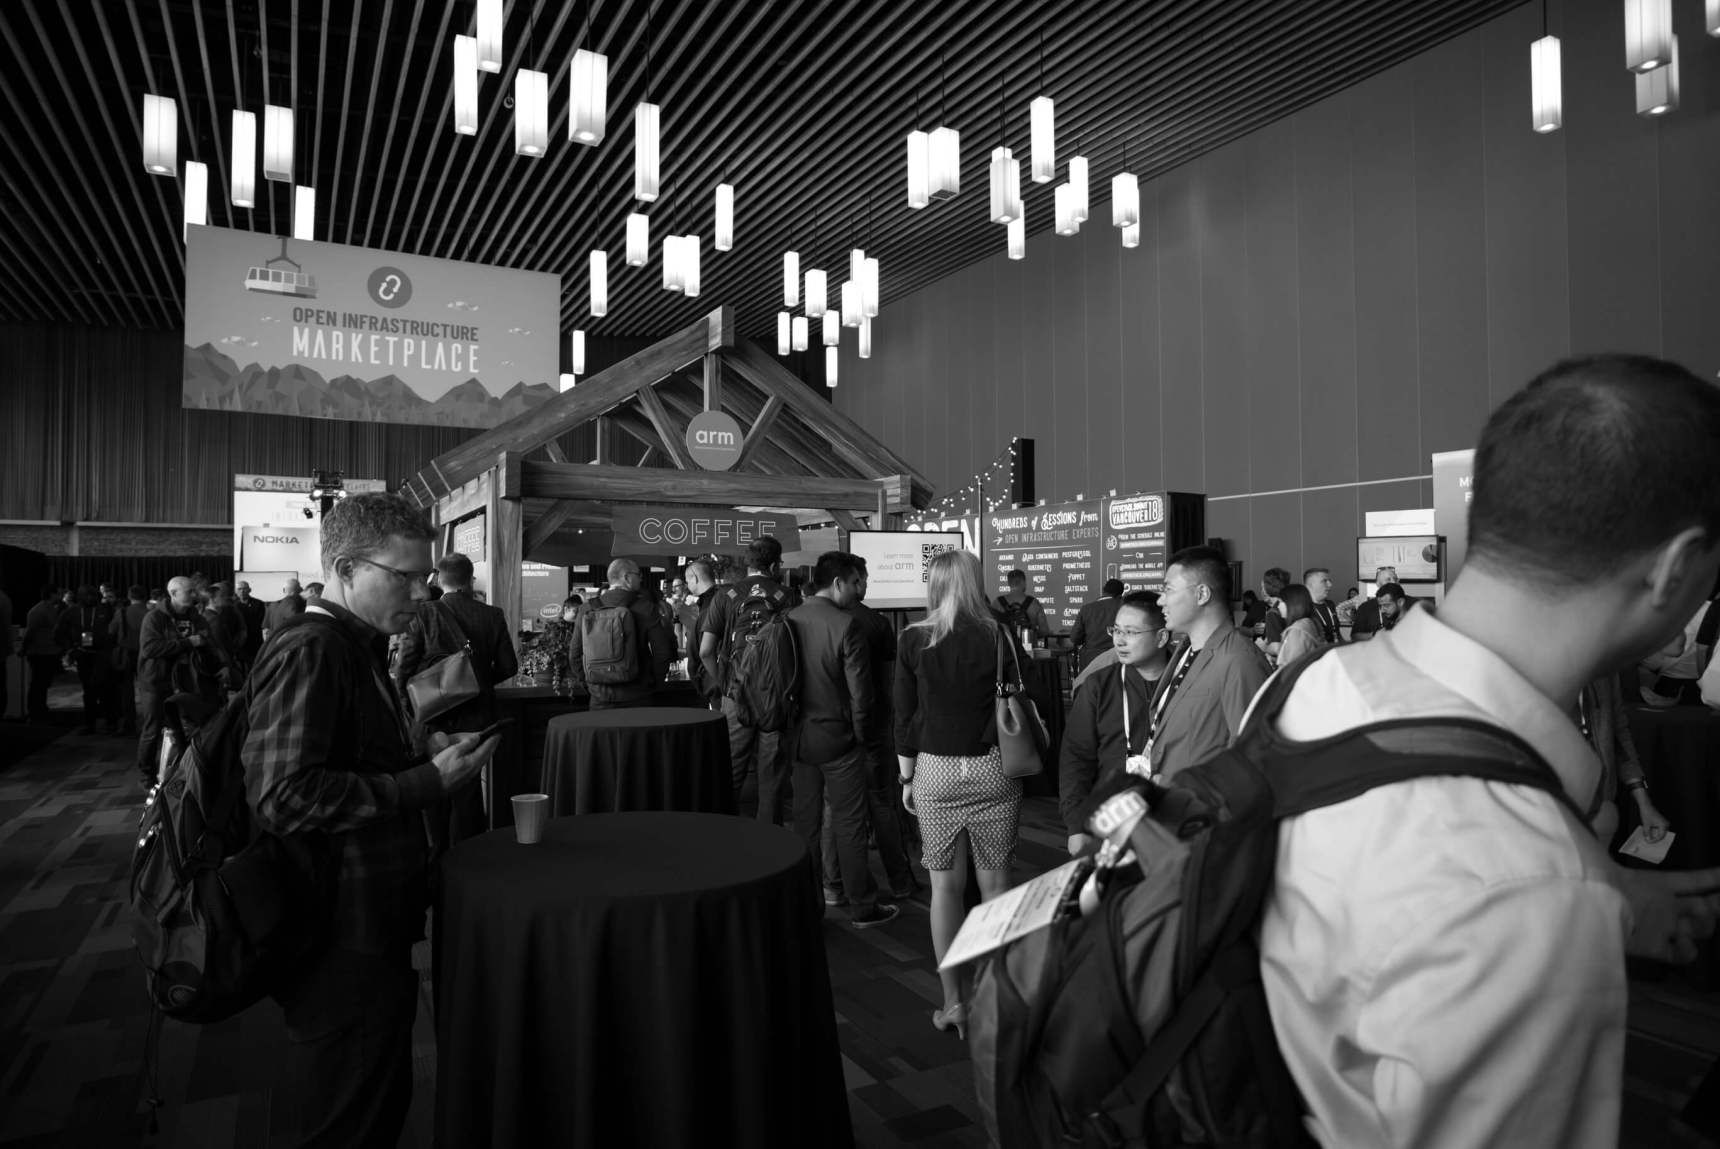 OpenStack Vancouver 2018 - Photo credit: Jason Brown, Global Solutions Architect, atmail